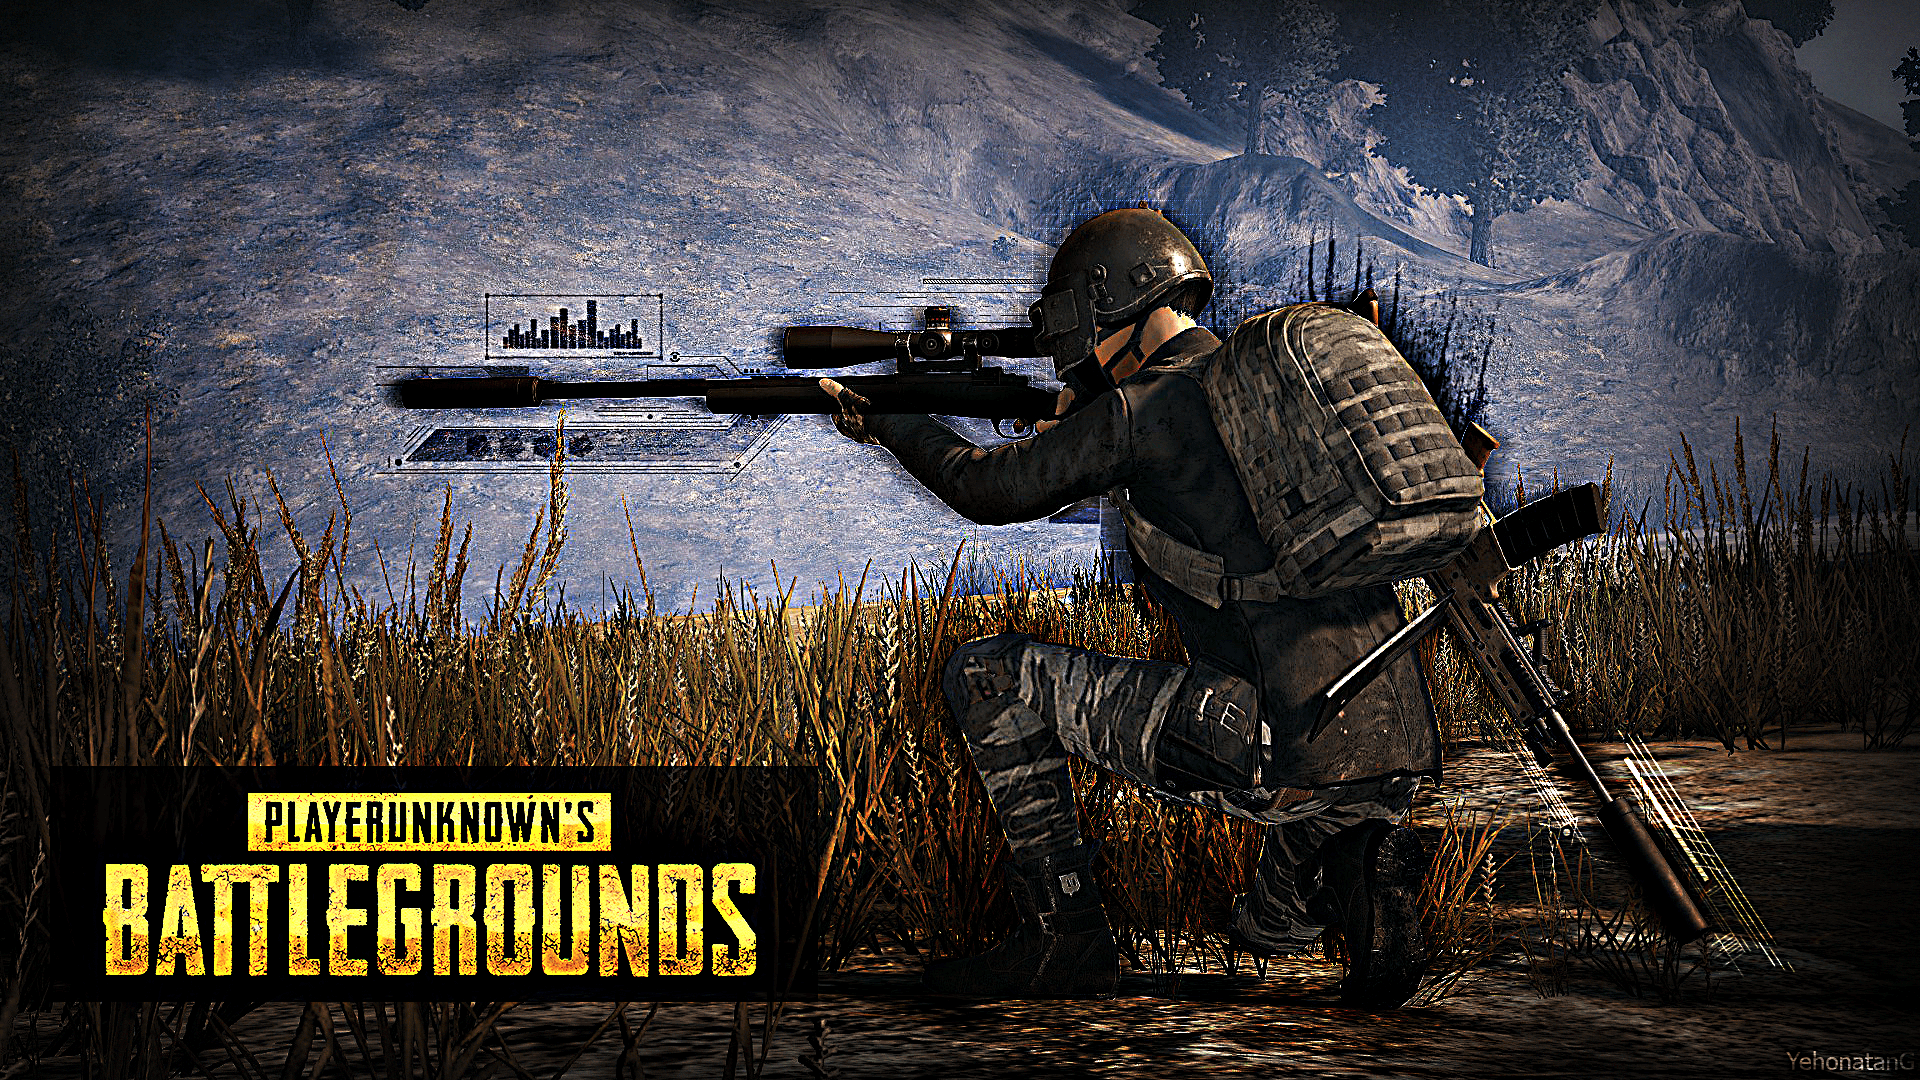 Pubg Wallpaper In Hd: PUBG HD Wallpapers